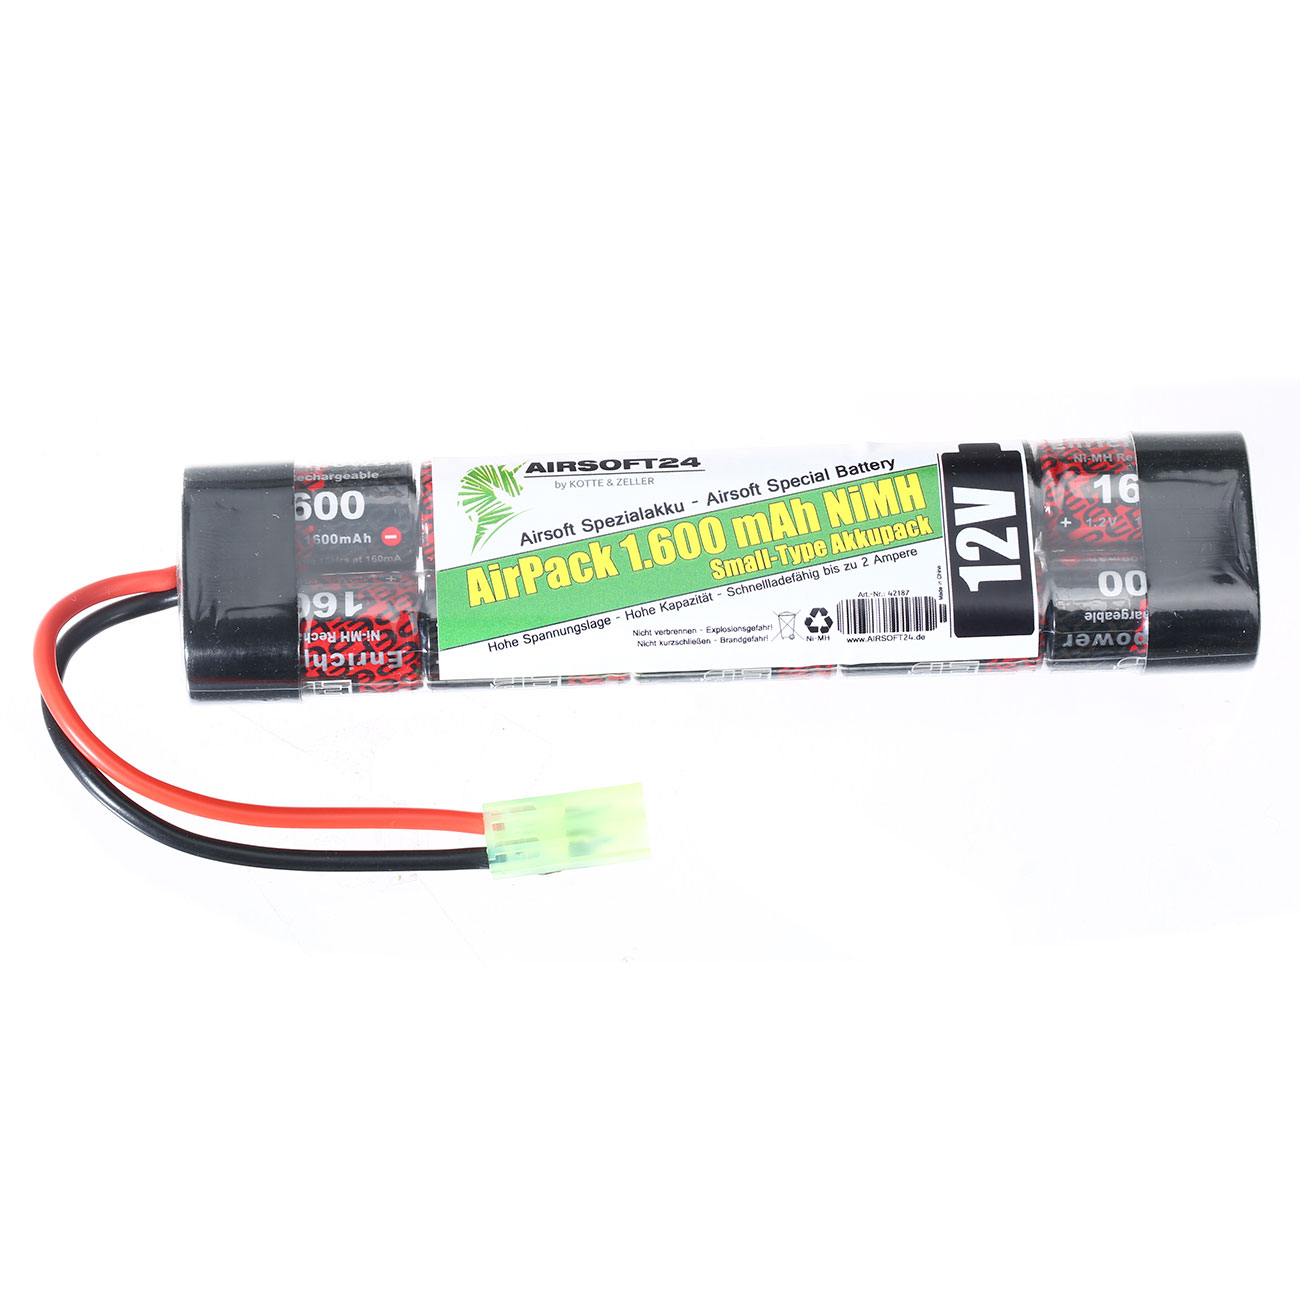 Airsoft24 AirPack Akku 12V 1600mAh NiMH Small-Type mit Mini-Tam Anschluss 1